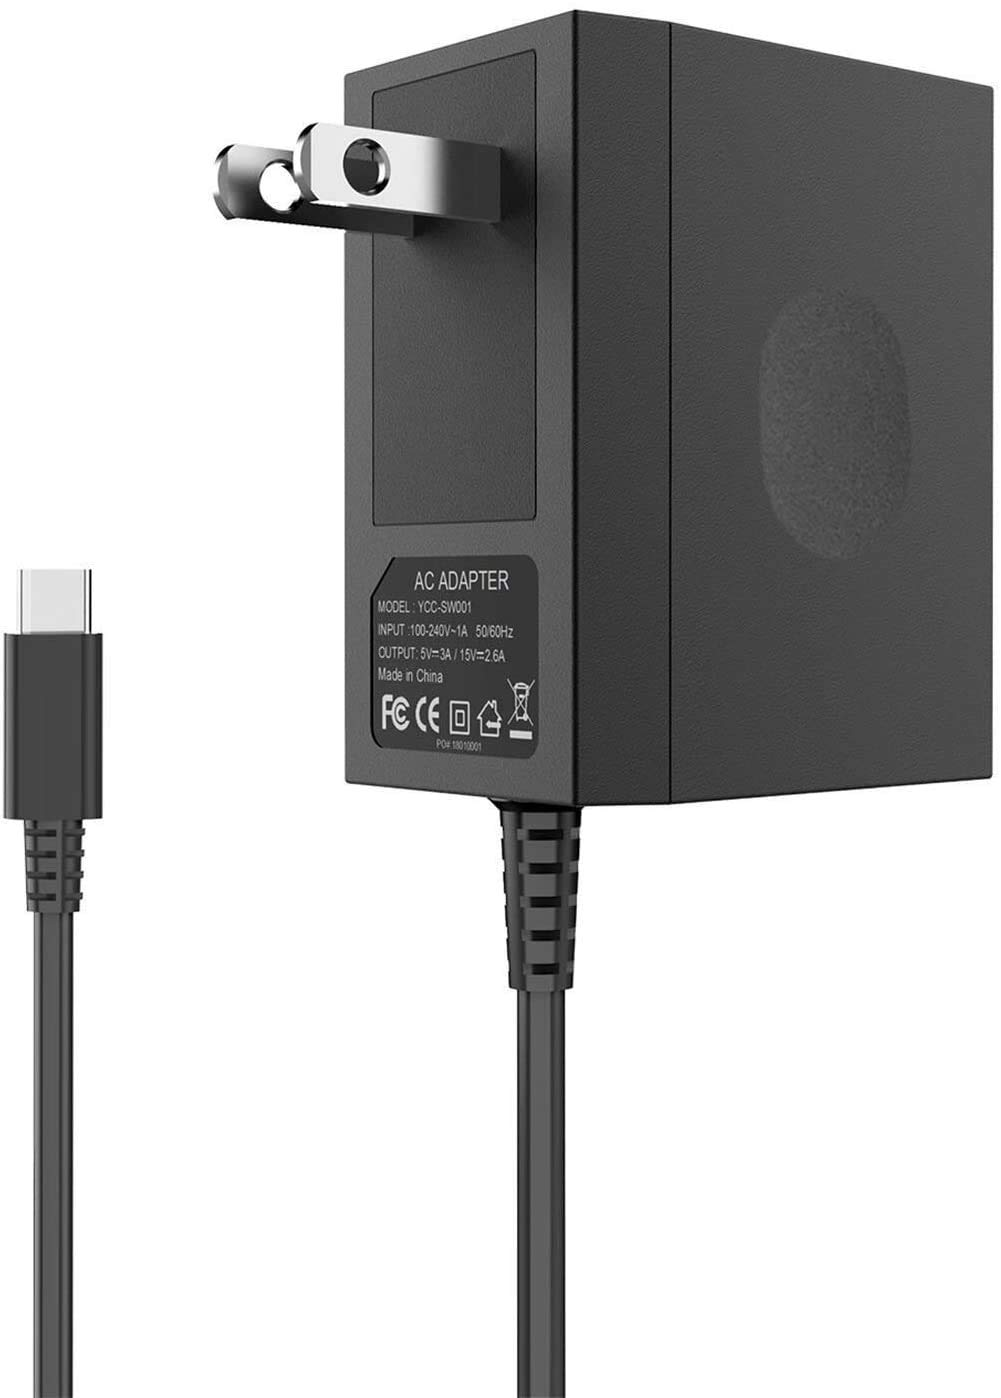 AC Adapter Charger for Nintendo Switch,Switch Charger AC Power Supply Adapter 15v/2.6A Faster Charging Portable Charger for Switch Dock /Switch Lite and Pro Controller (Support TV Mode)